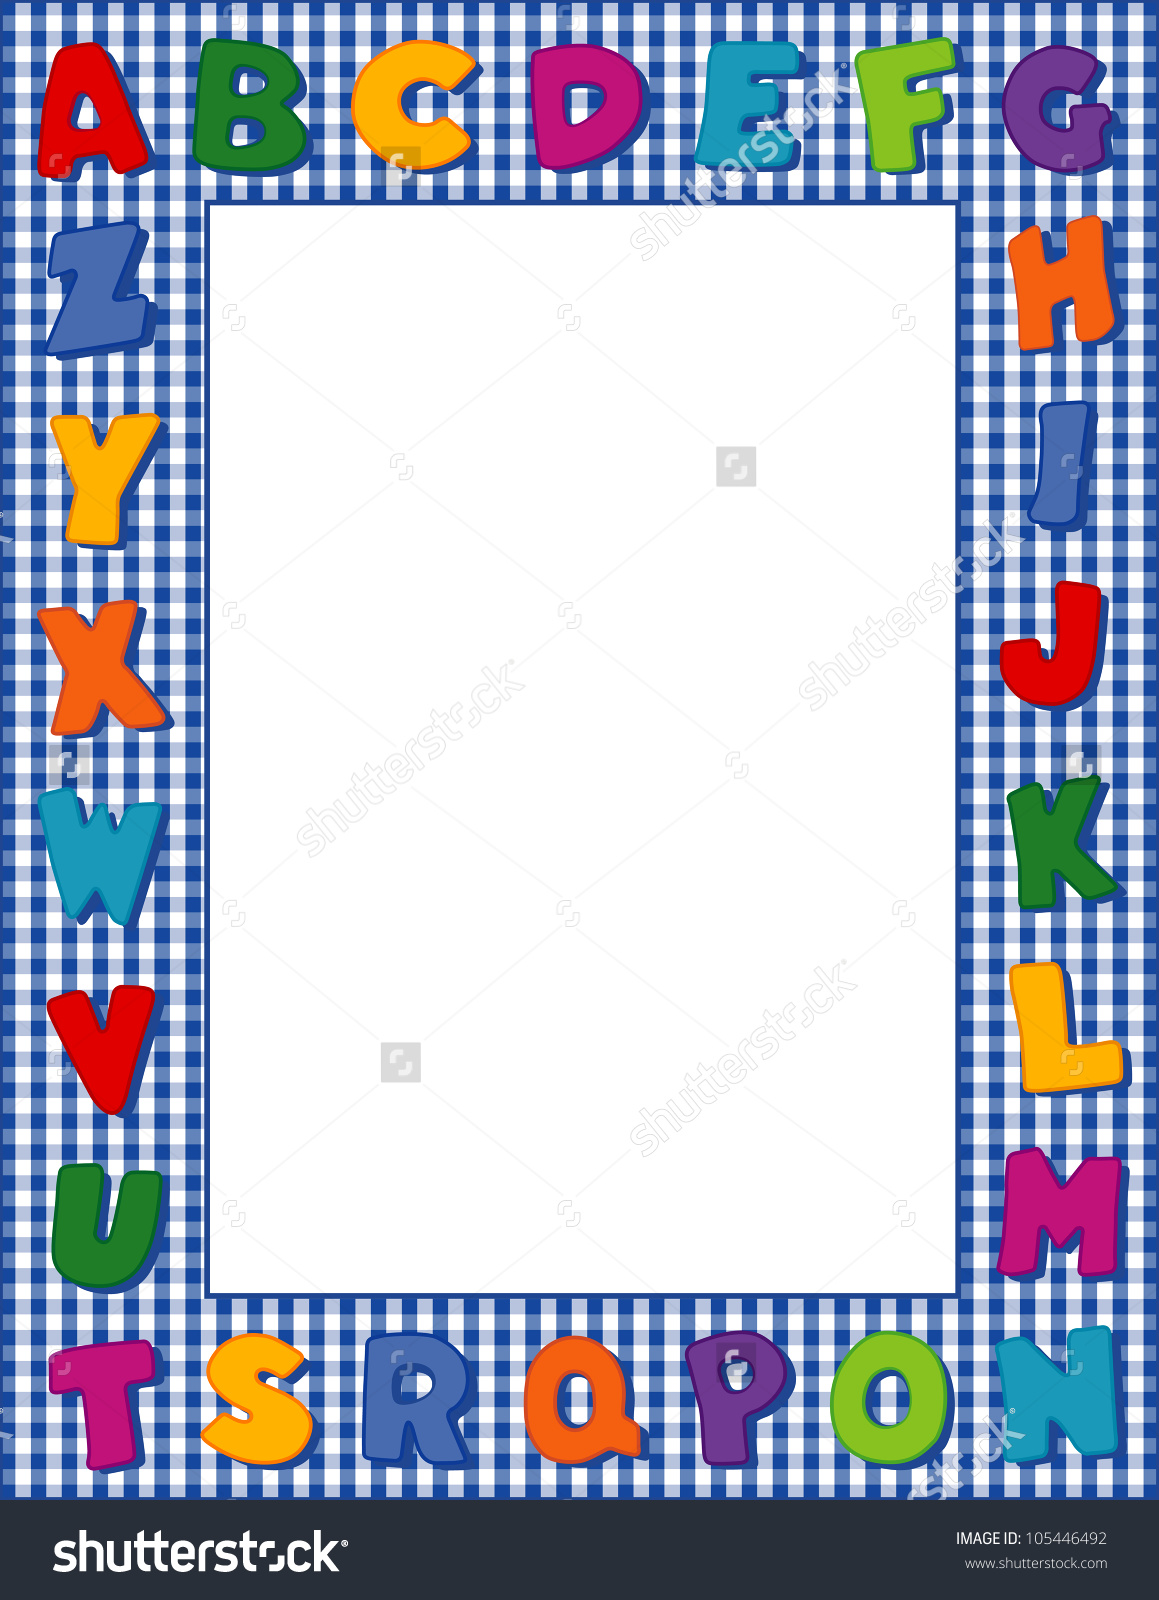 Letter clipart abc border png library Alphabet Frame Multicolor Letters Blue Gingham Stock Illustration ... png library